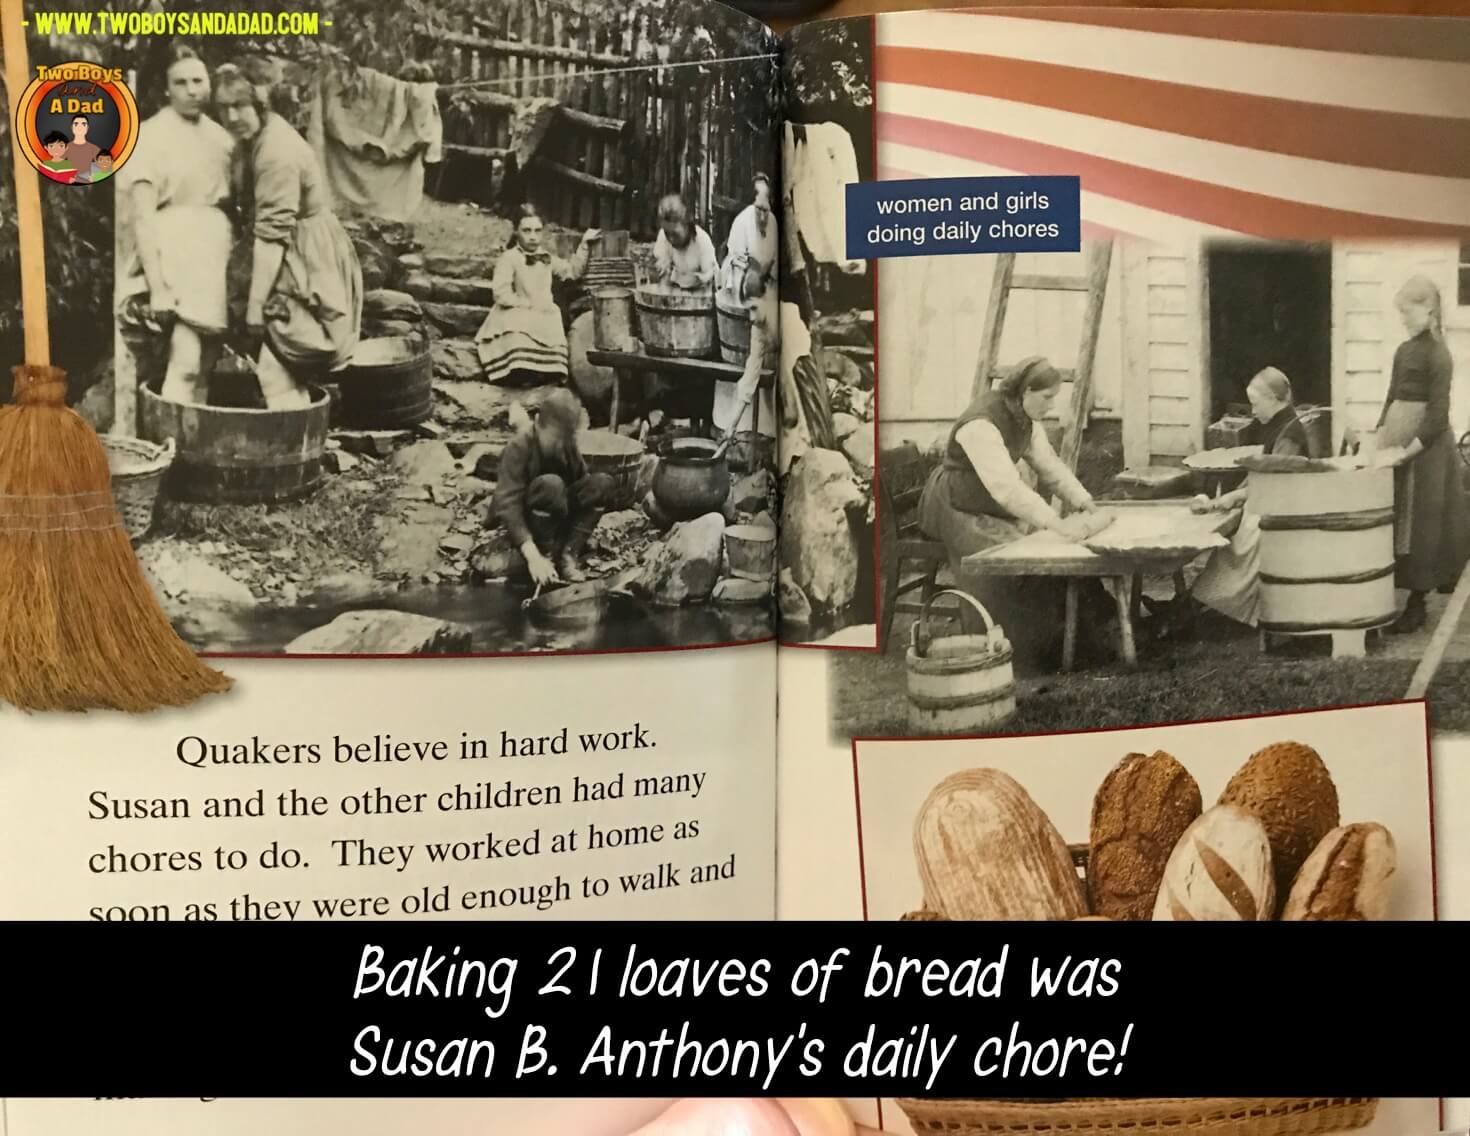 Susan B. Anthony's early life